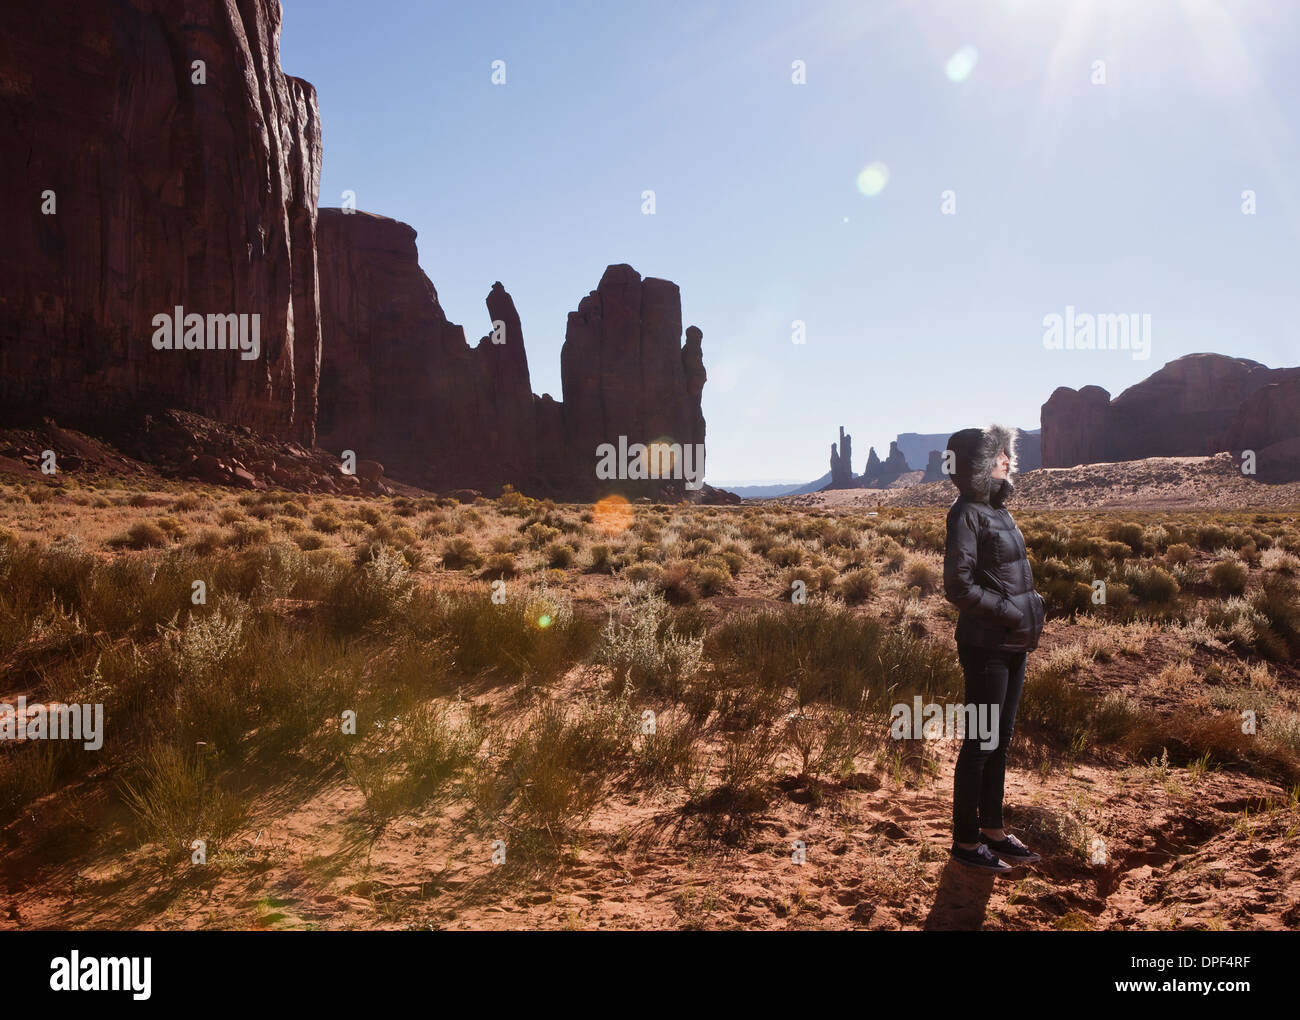 Mujeres turistas solos, en Monument Valley Navajo Tribal Park, Arizona, EE.UU. Imagen De Stock